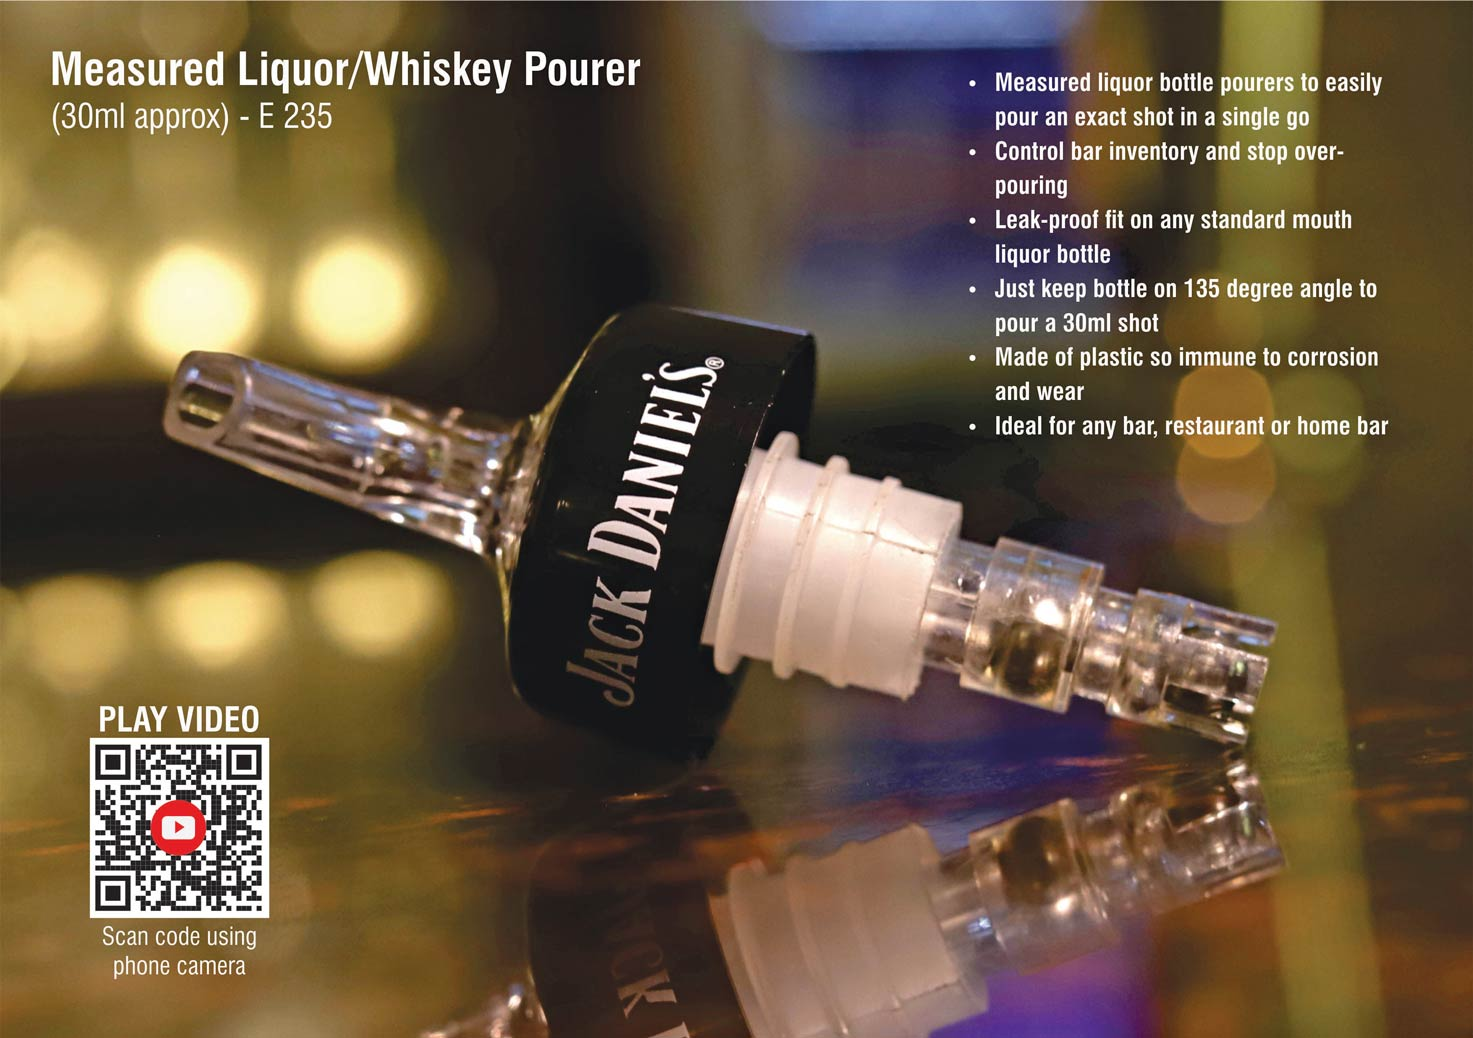 E235 - Measured Liquor/whiskey pourer (30ml approx)